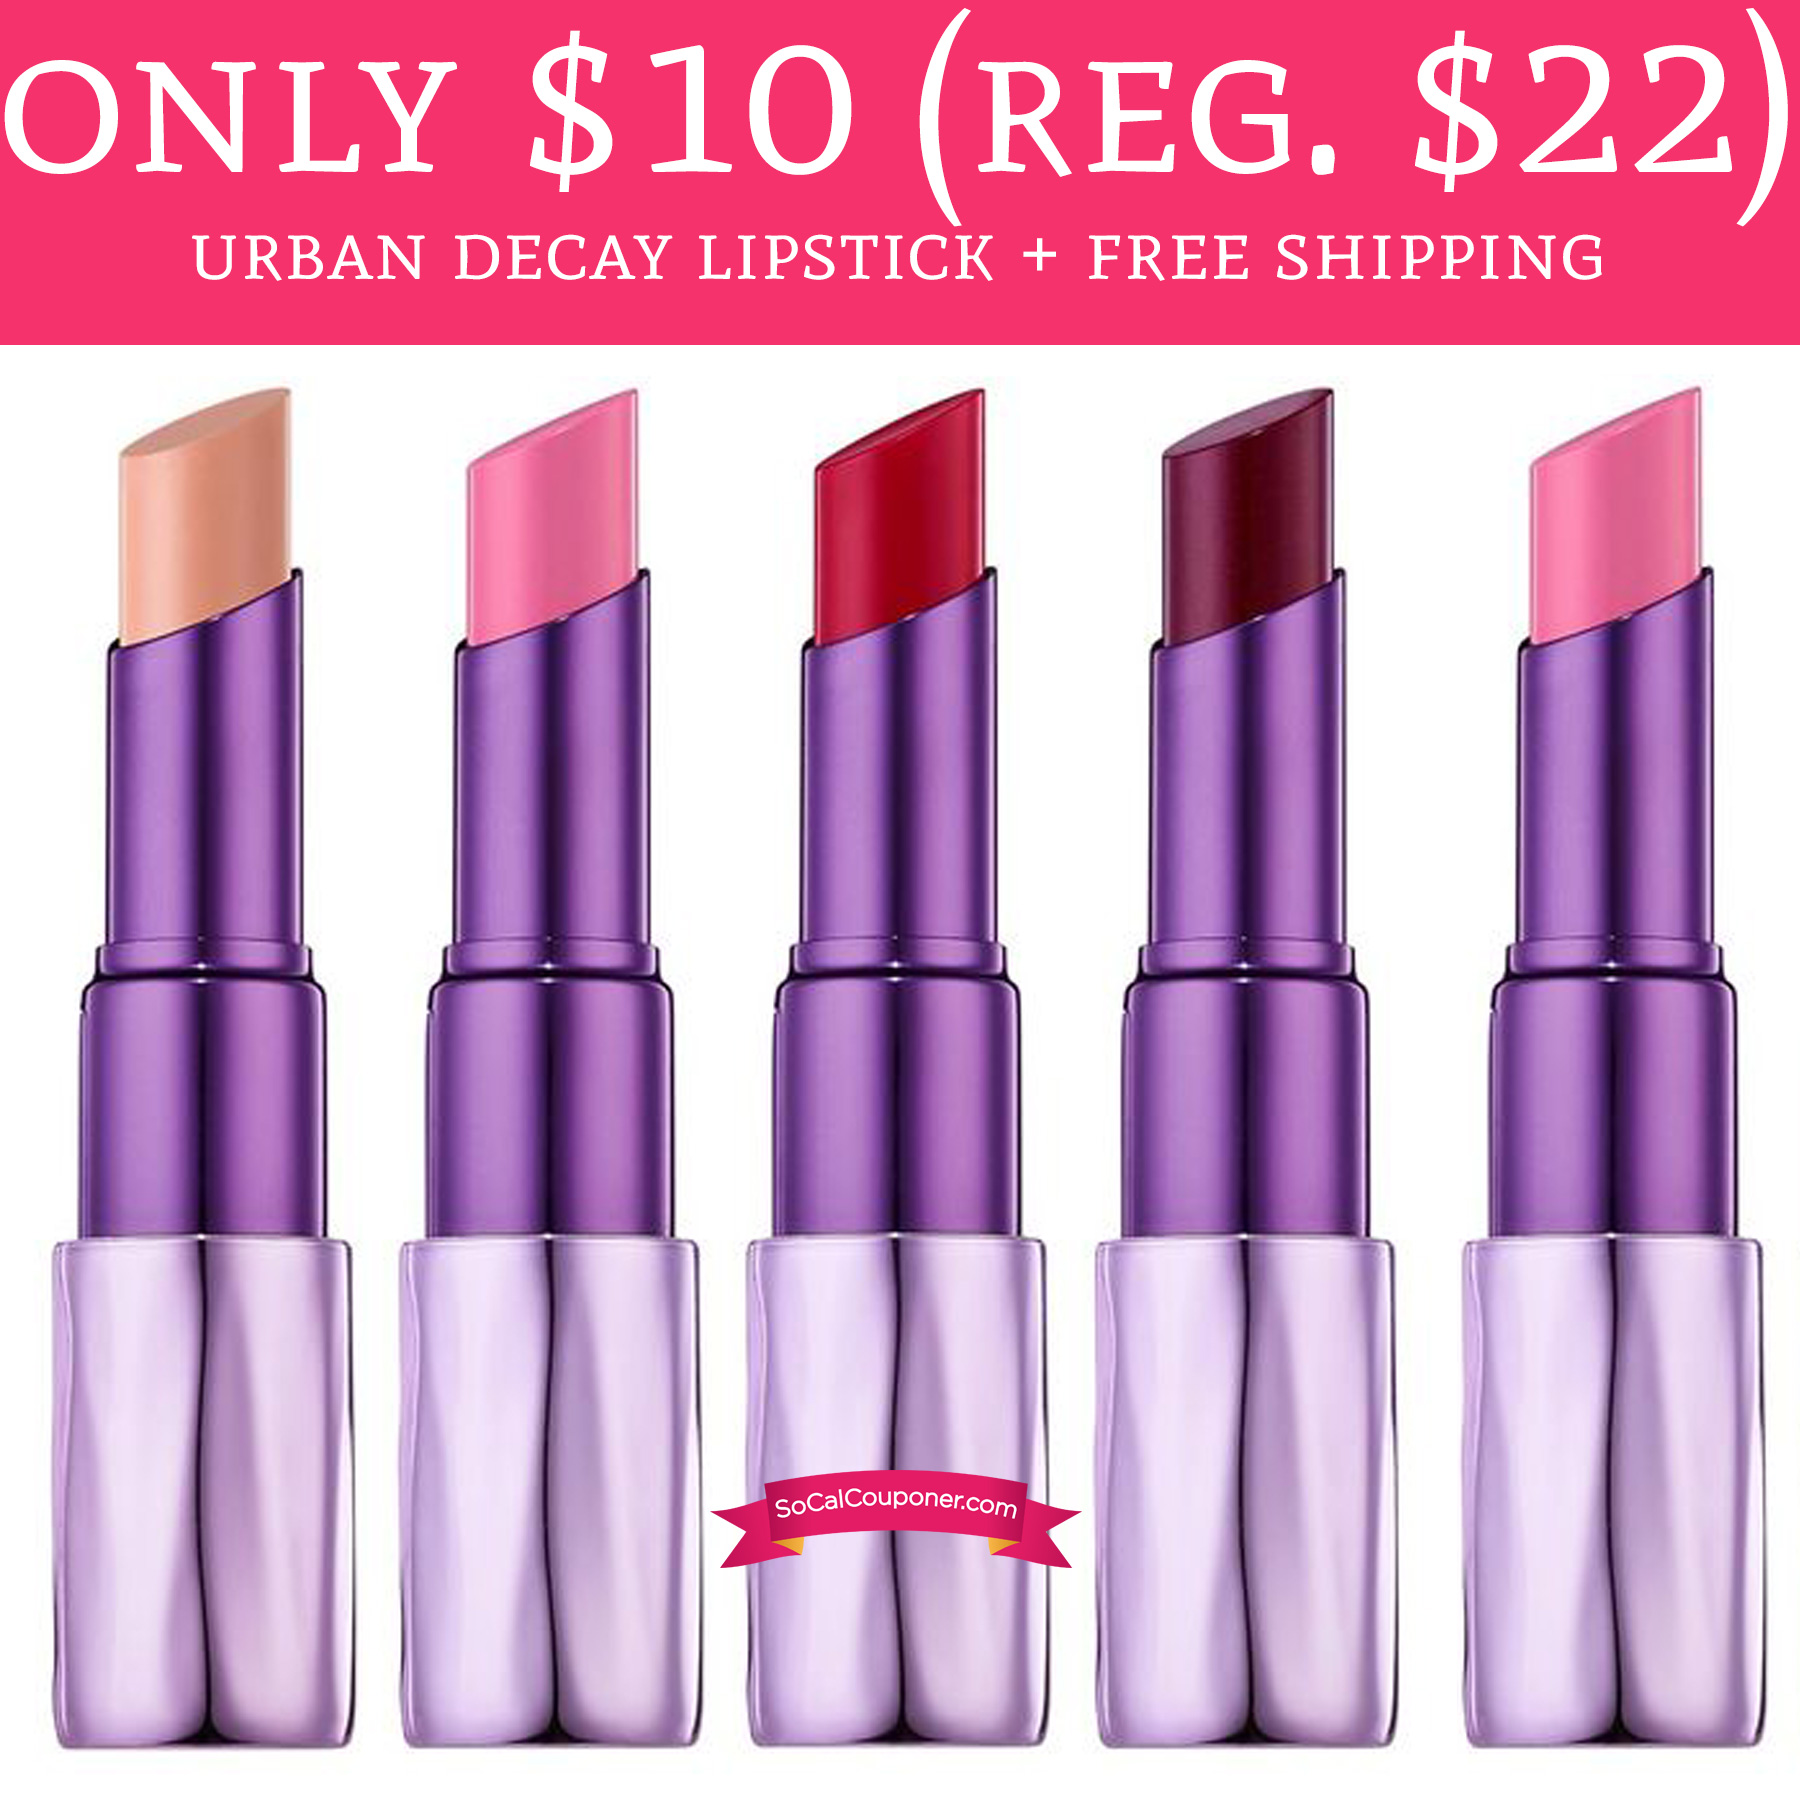 Urban Decay Coupons. lip gloss, lip pencil, lip brush, and the list goes on. Now before you place your order online, grab yourself an Urban Decay coupon to enjoy instant savings at checkout. Shop sanjeeviarts.ml All Offers 5; Coupon Make sure you use the promotional code to get free shipping on all orders! Expired: 12/4/ Expired 12/5/